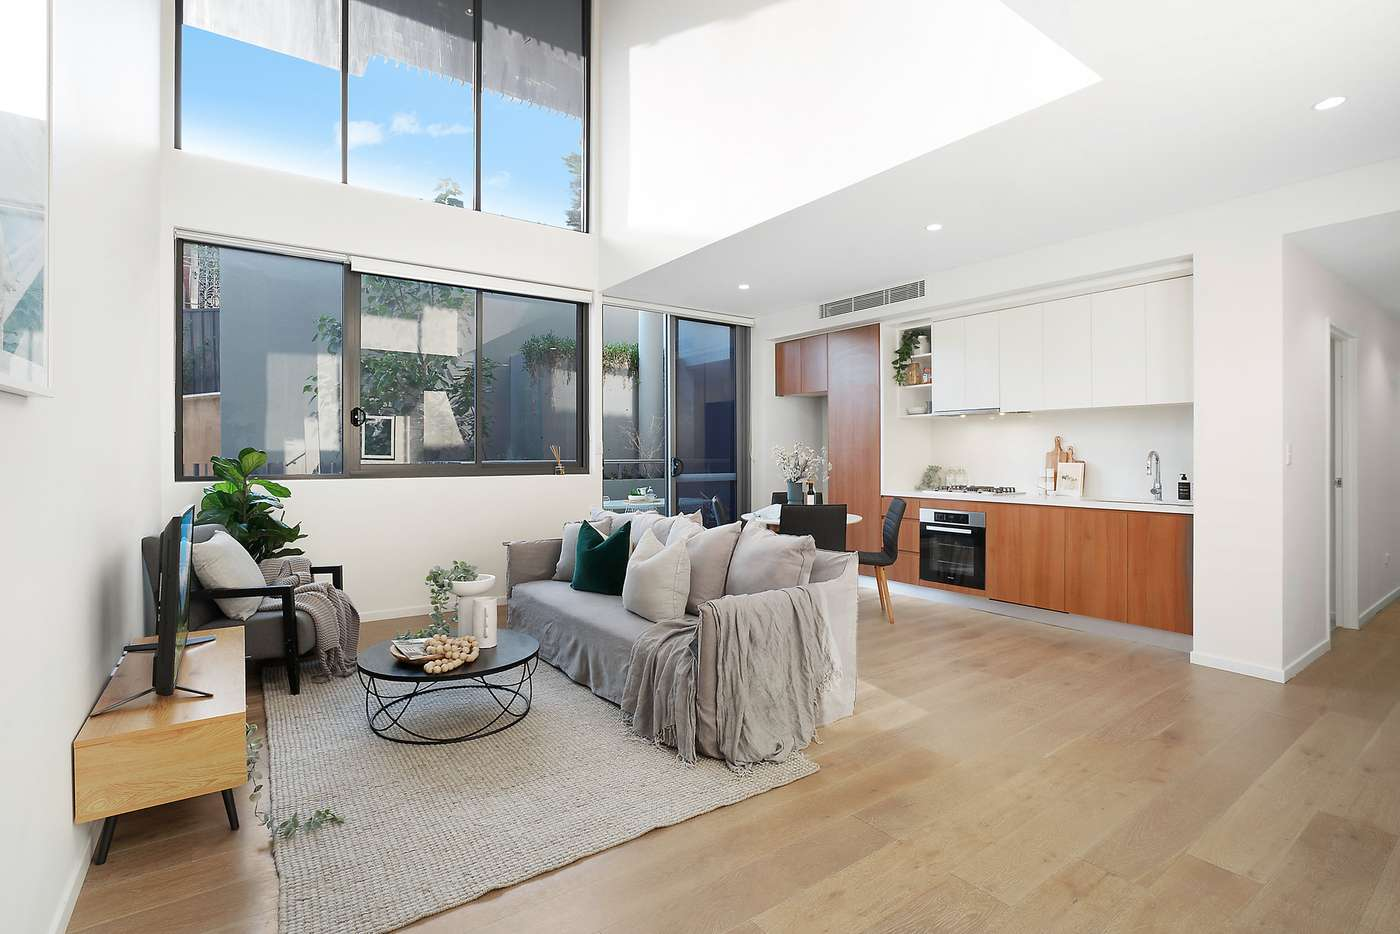 Main view of Homely apartment listing, 3/27 Thornleigh Street, Thornleigh NSW 2120